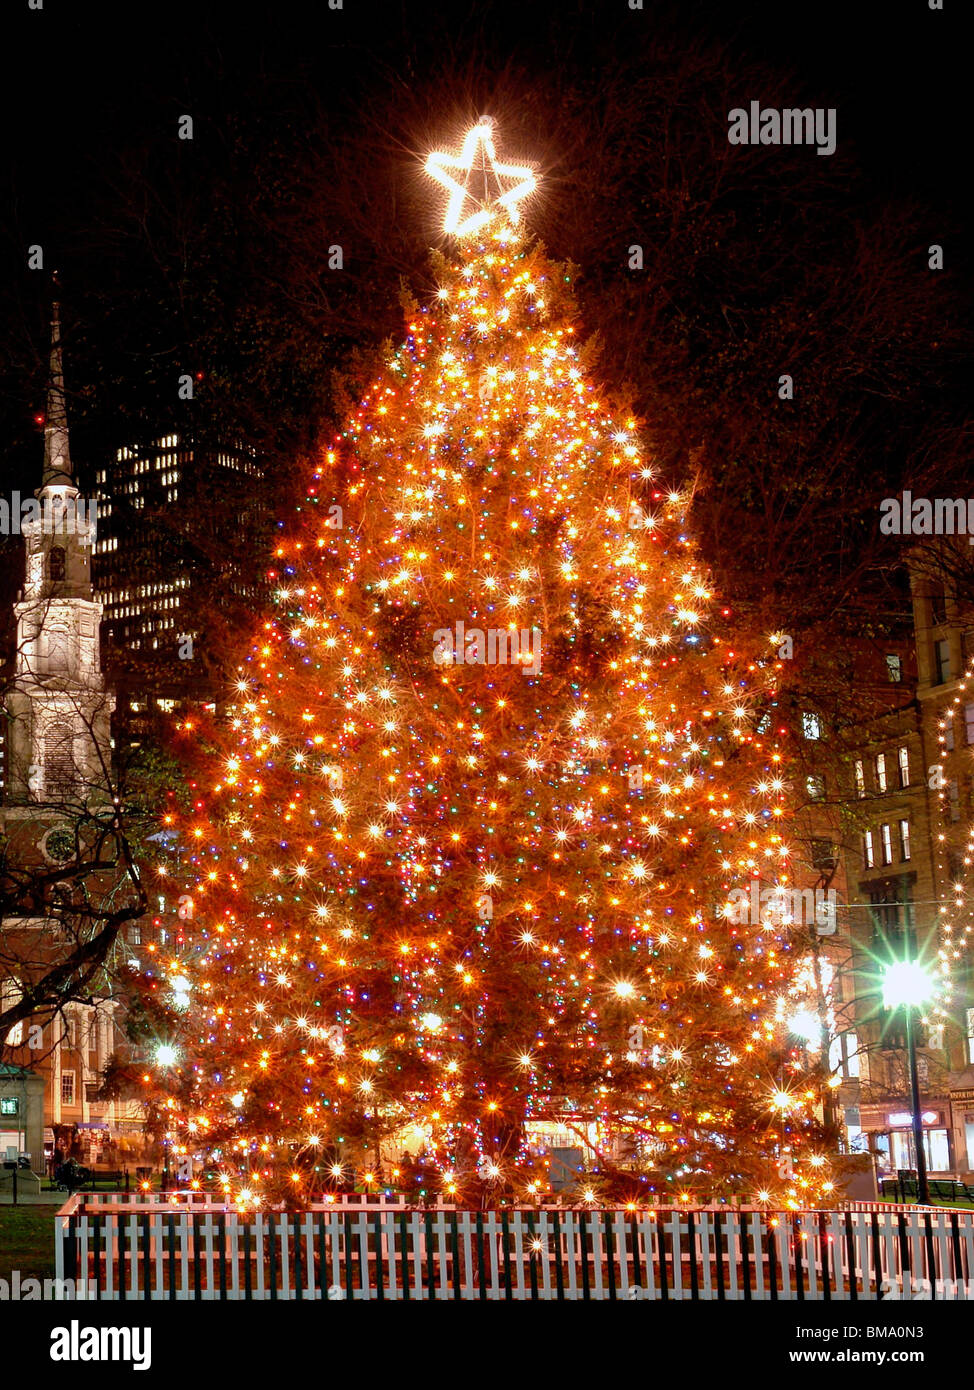 Outdoor Light Up Christmas Tree.Large Decorated Outdoor Christmas Tree On Boston Common Lit